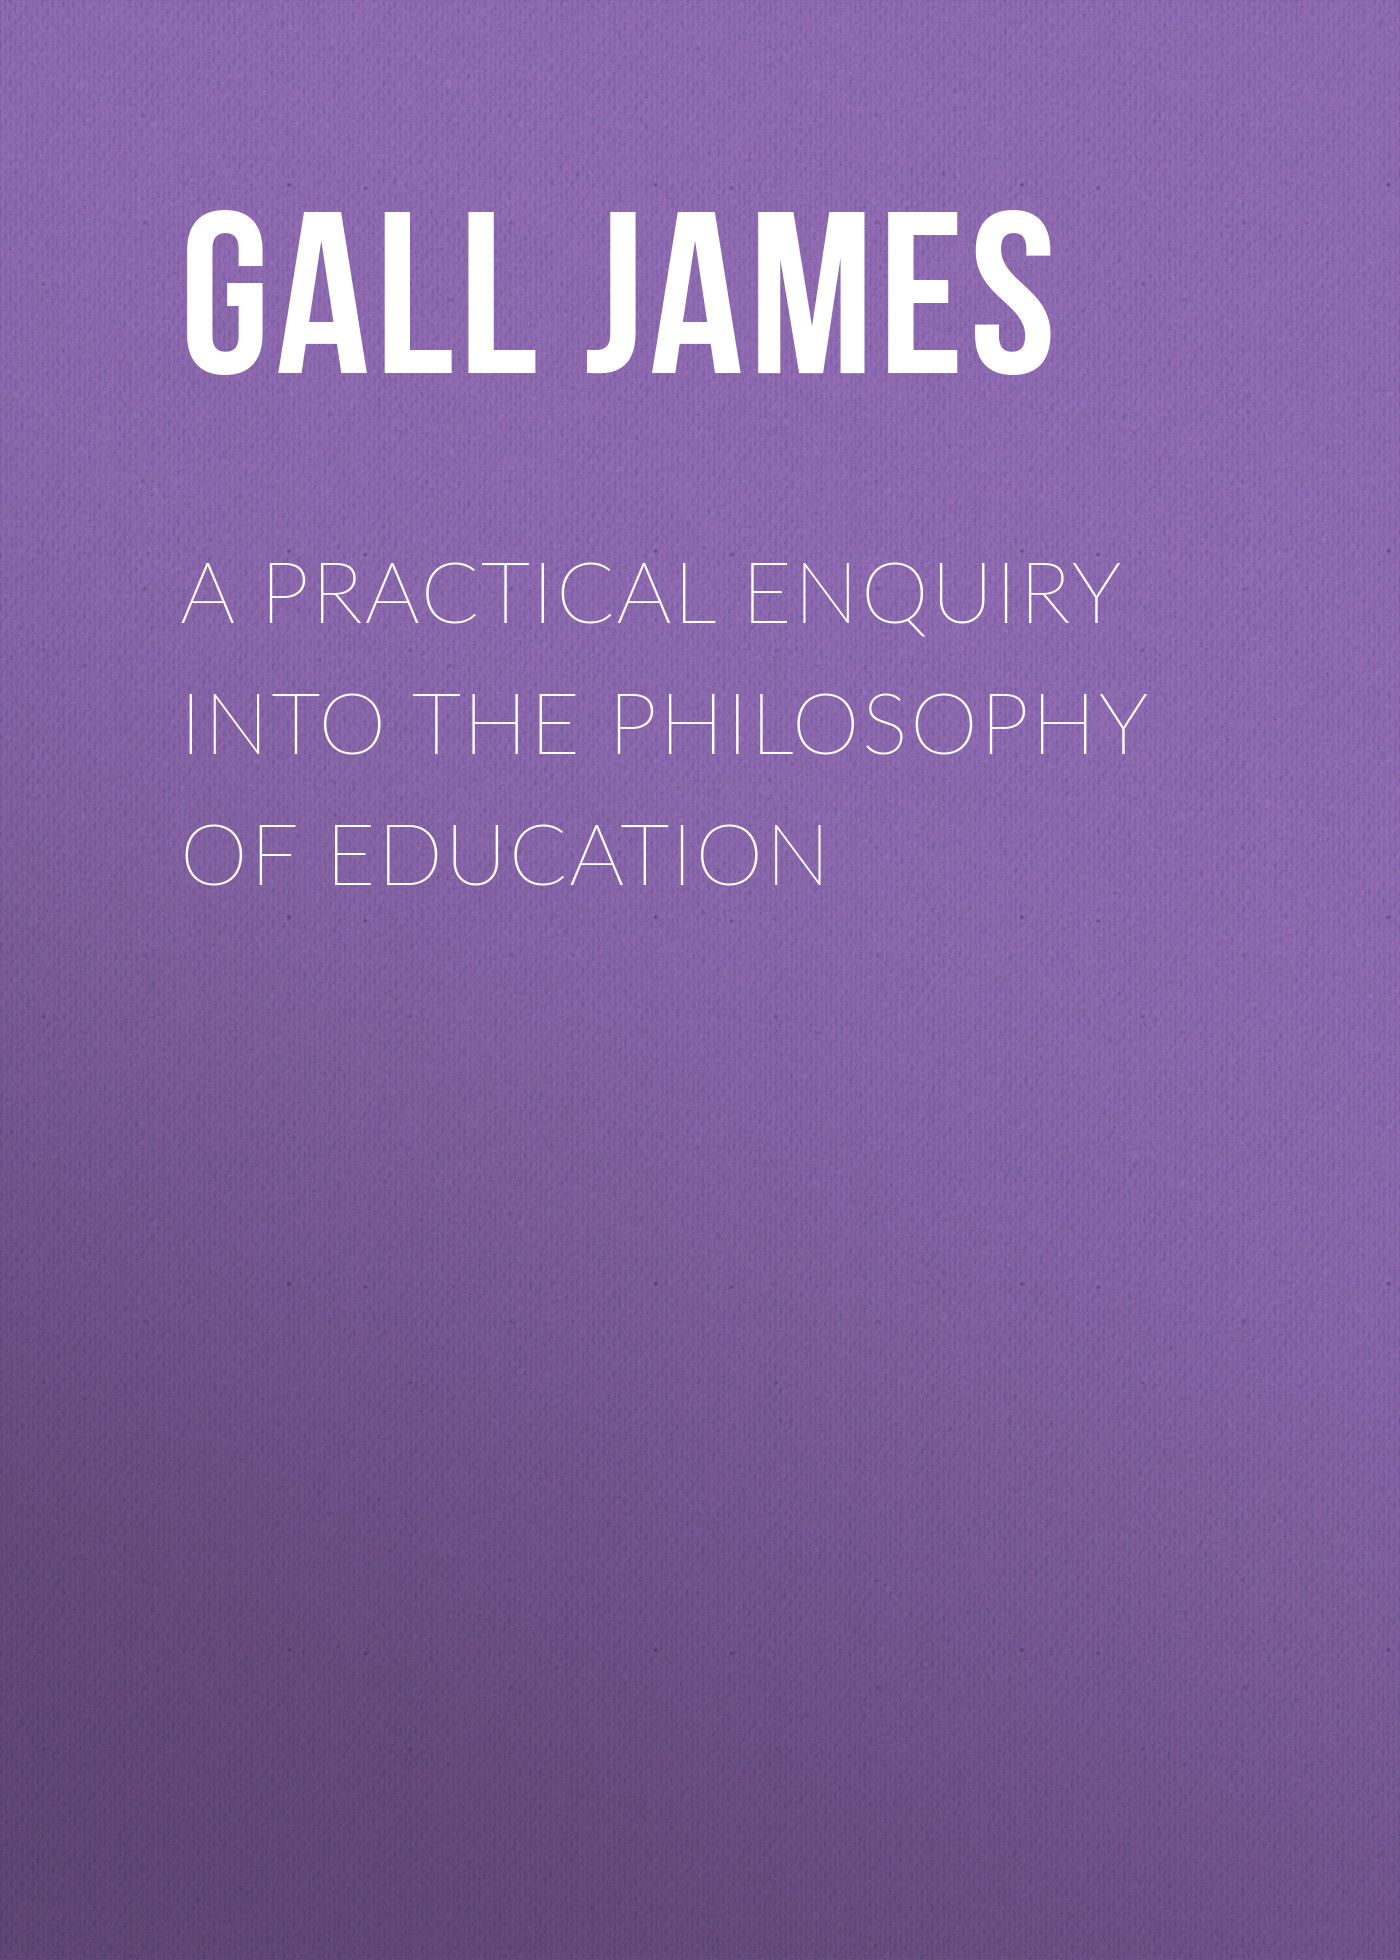 Gall James A Practical Enquiry into the Philosophy of Education an investigation into myanmar's education reform